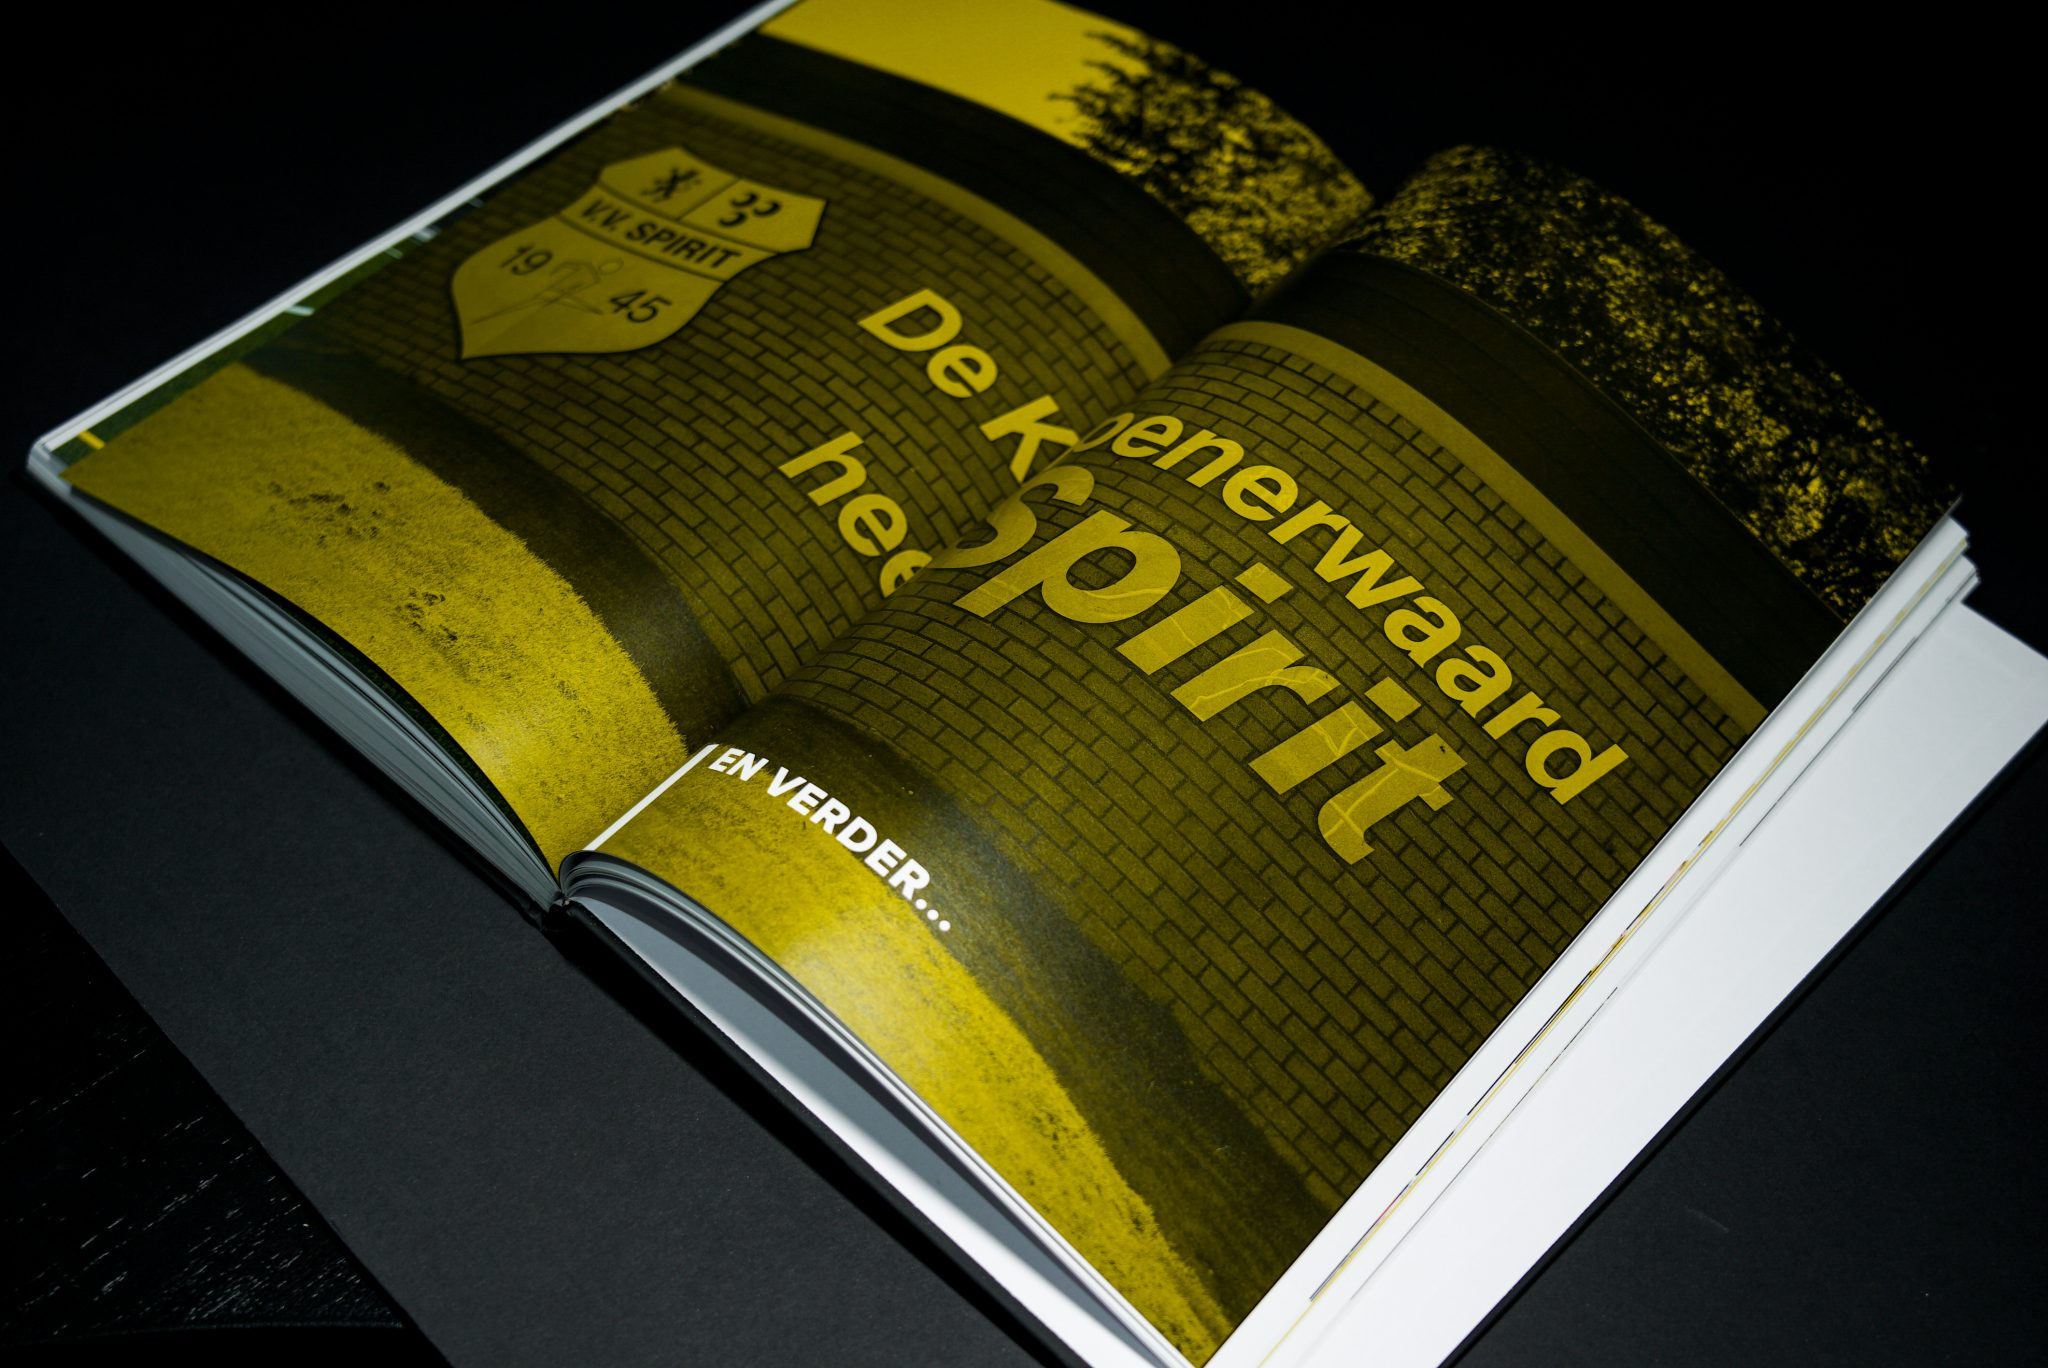 Jubileumboek 75 jaar Spirit Sneak Preview 6